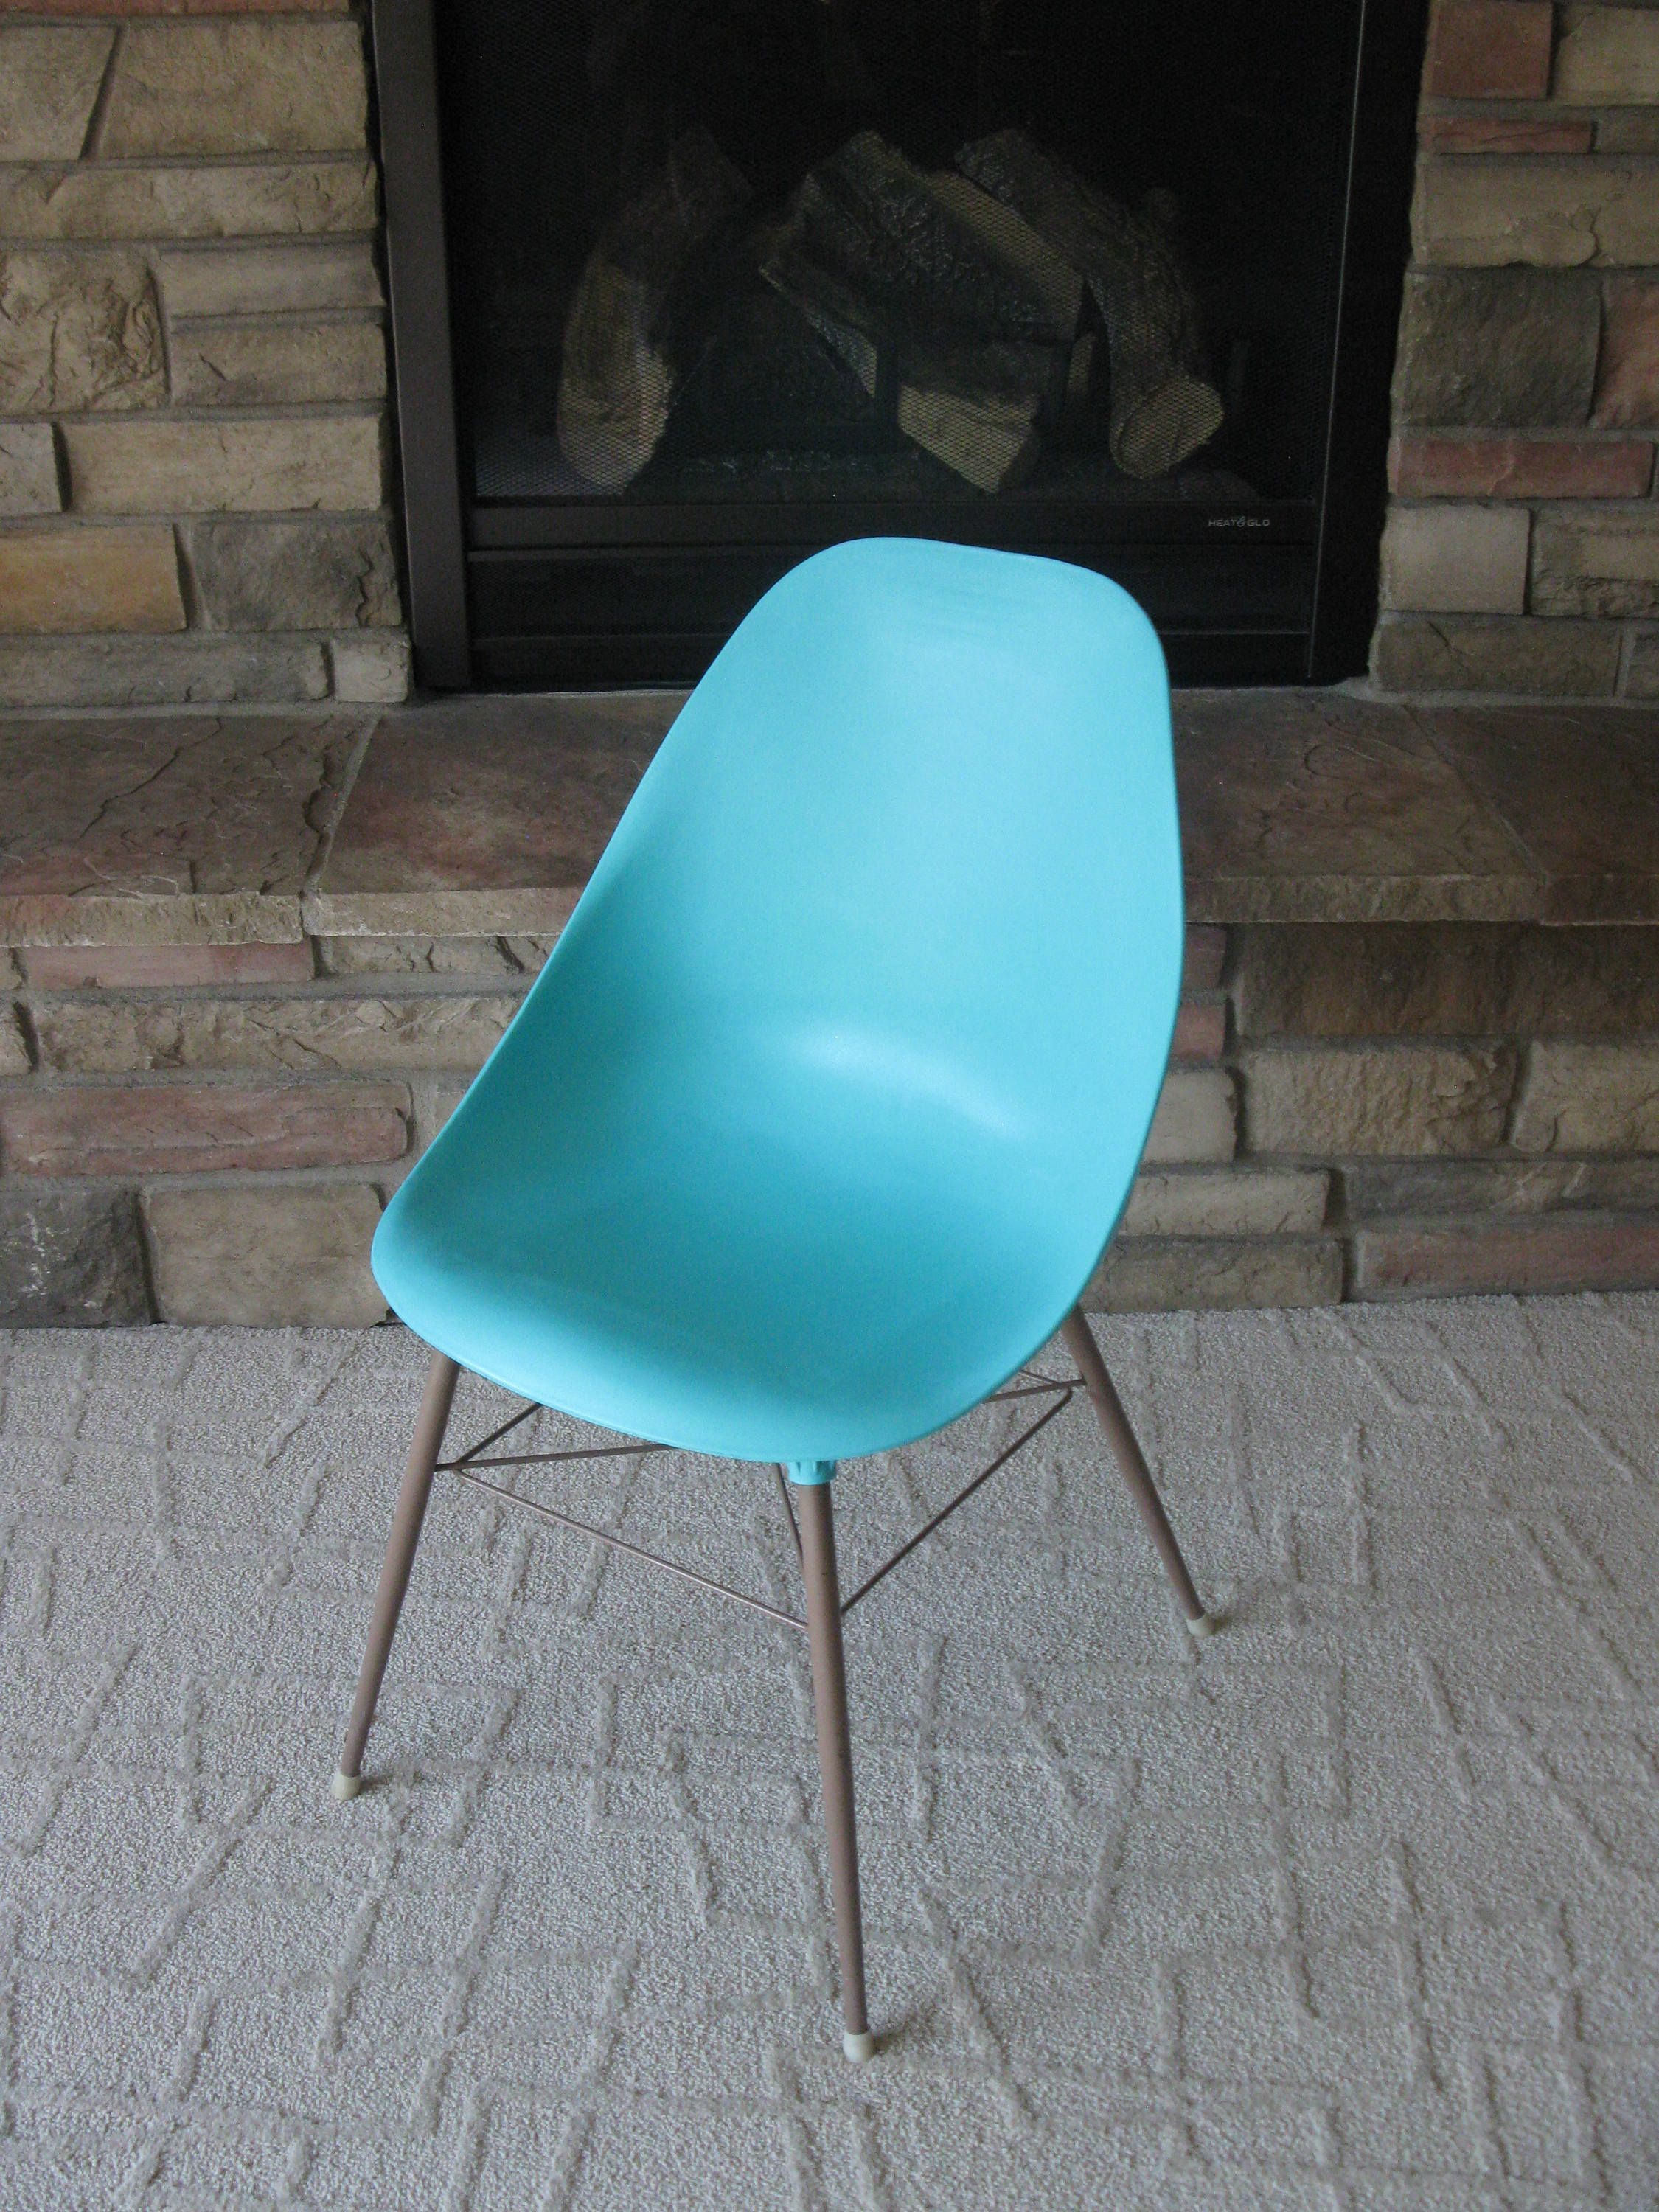 Modern Plastic Chairs 1960s Turquoise Aqua Scoop Chair Mid Century Modern